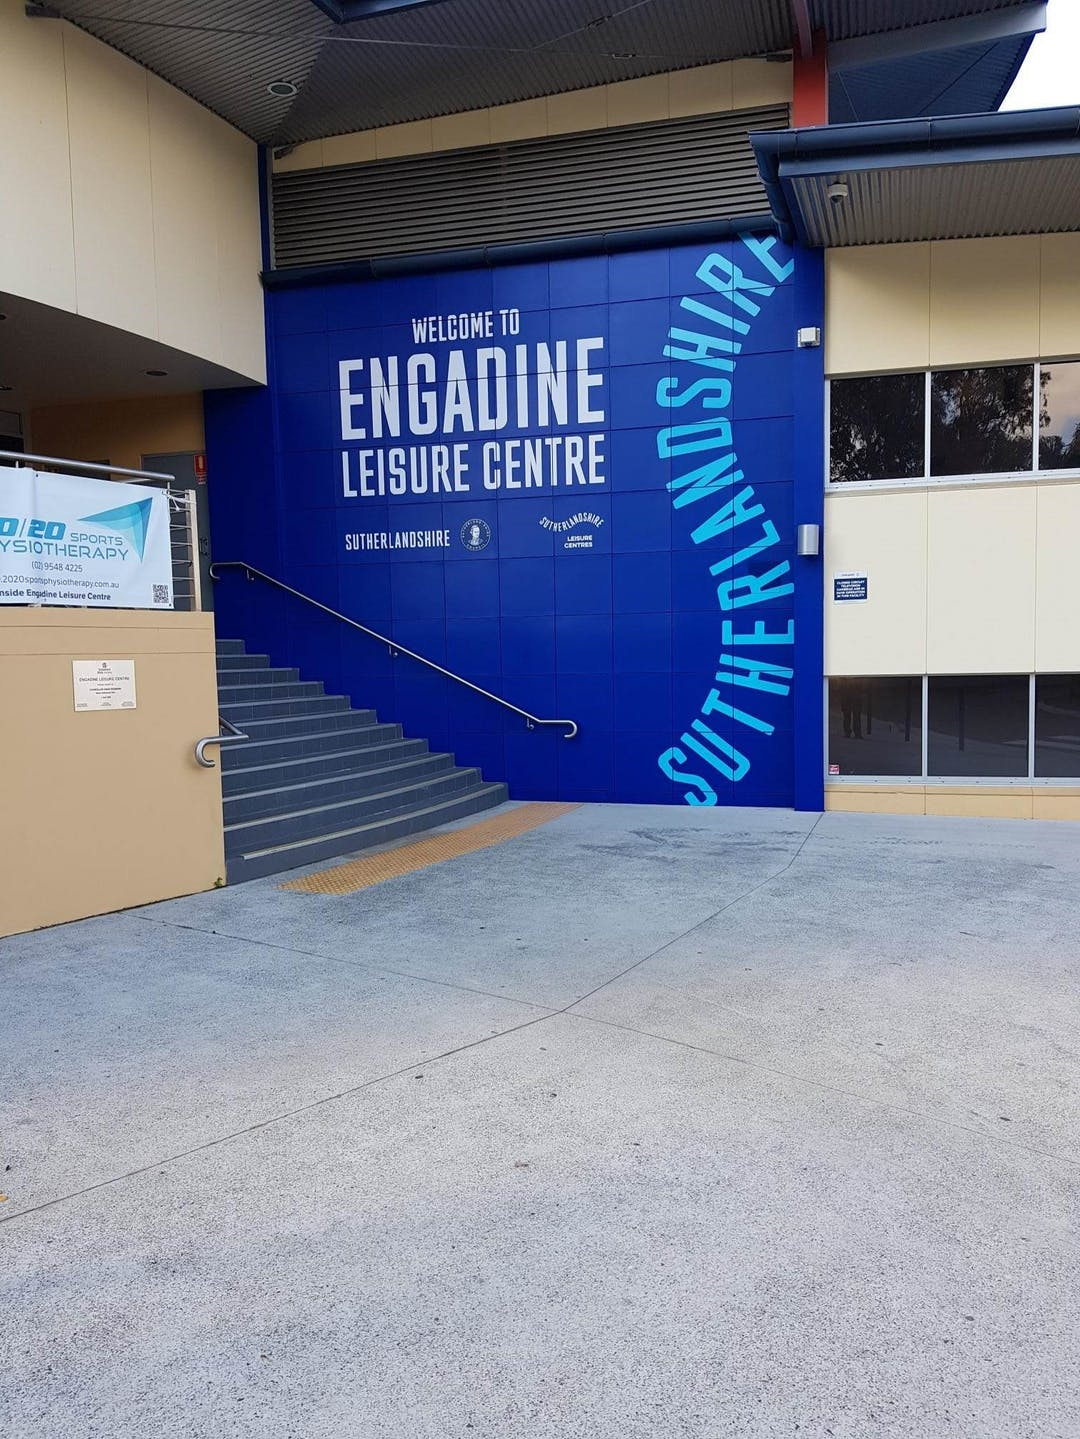 open olympic pool at engadine